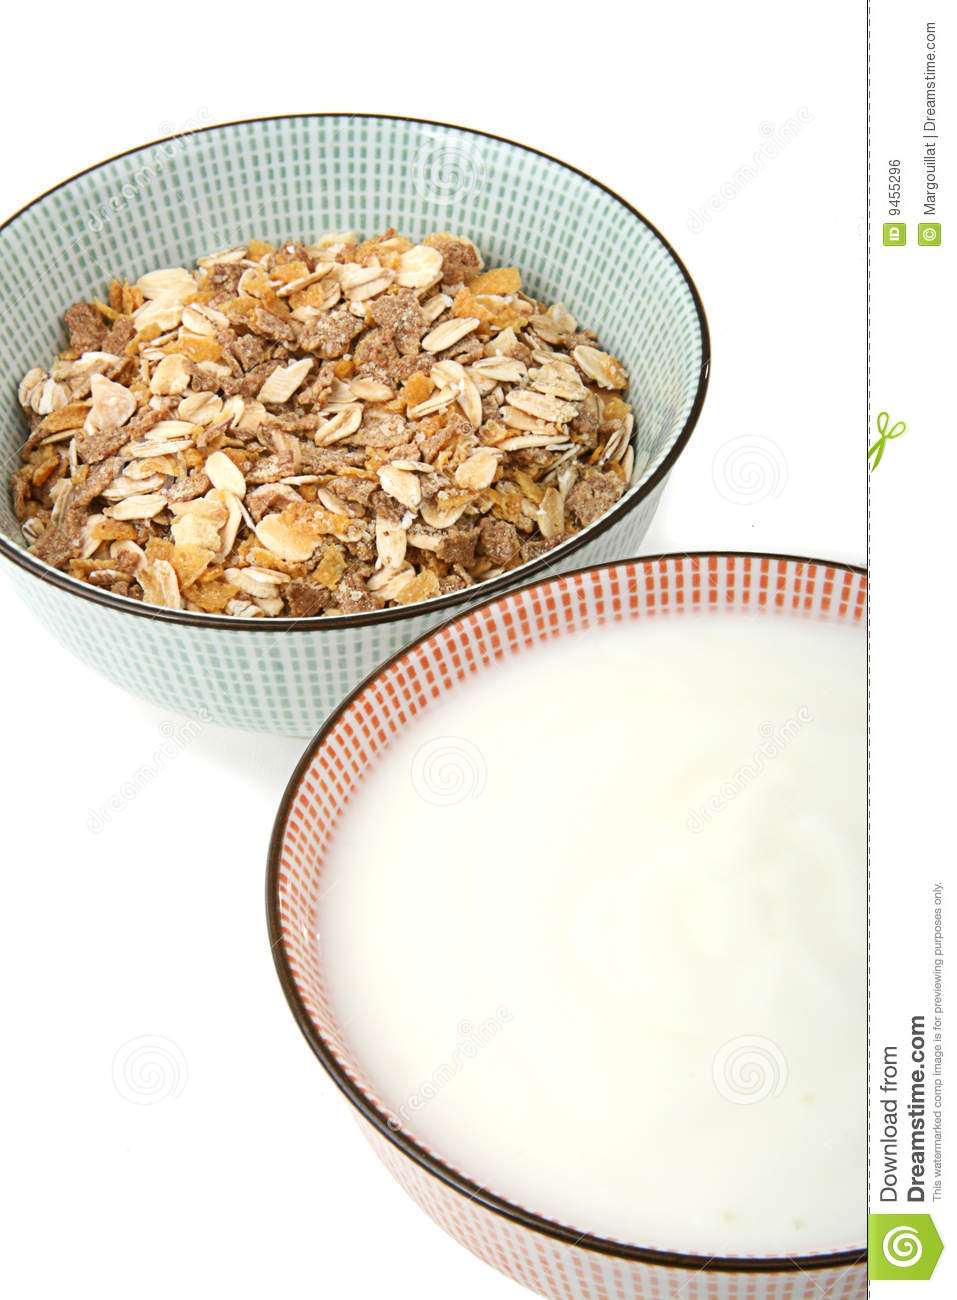 Bowl Of Cereal And Milk Royalty Free Stock Image - Image ...